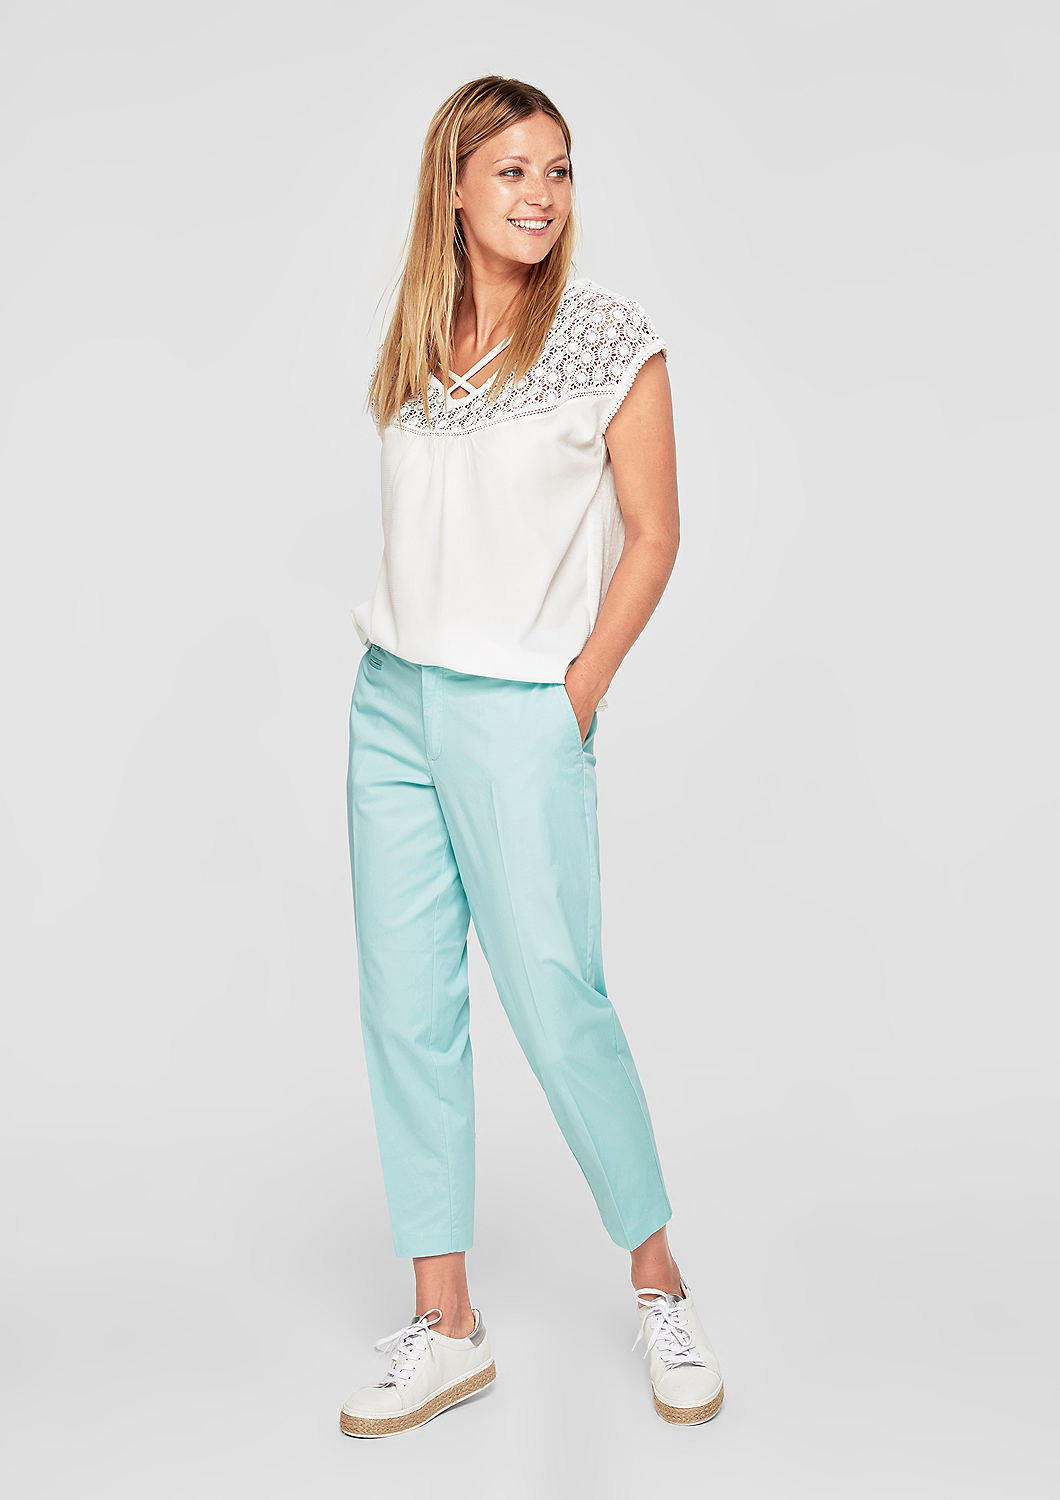 s.Oliver - Shape Ankle: Leichte Chino - 2